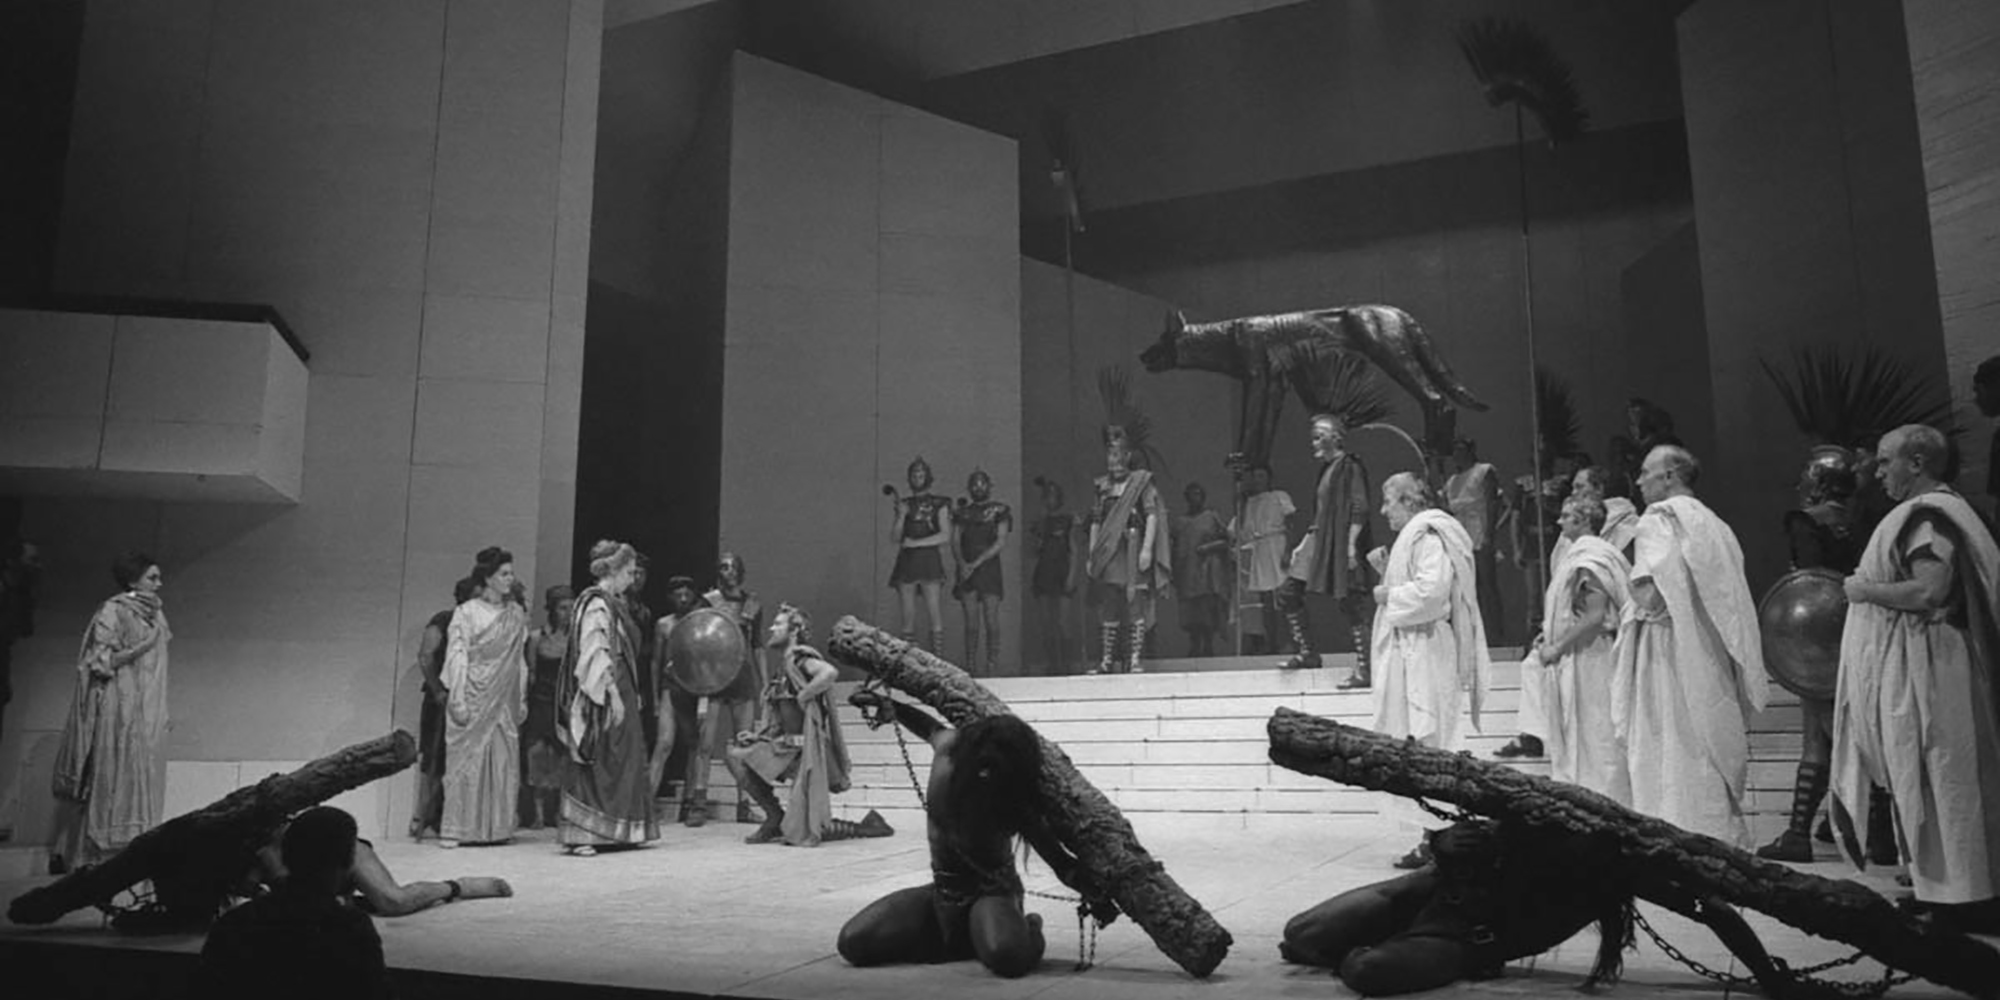 Black and white photograph of a proscenium stage, with a large group of actors standing in Roman garb: white tunics and robes, with plumed helmets.